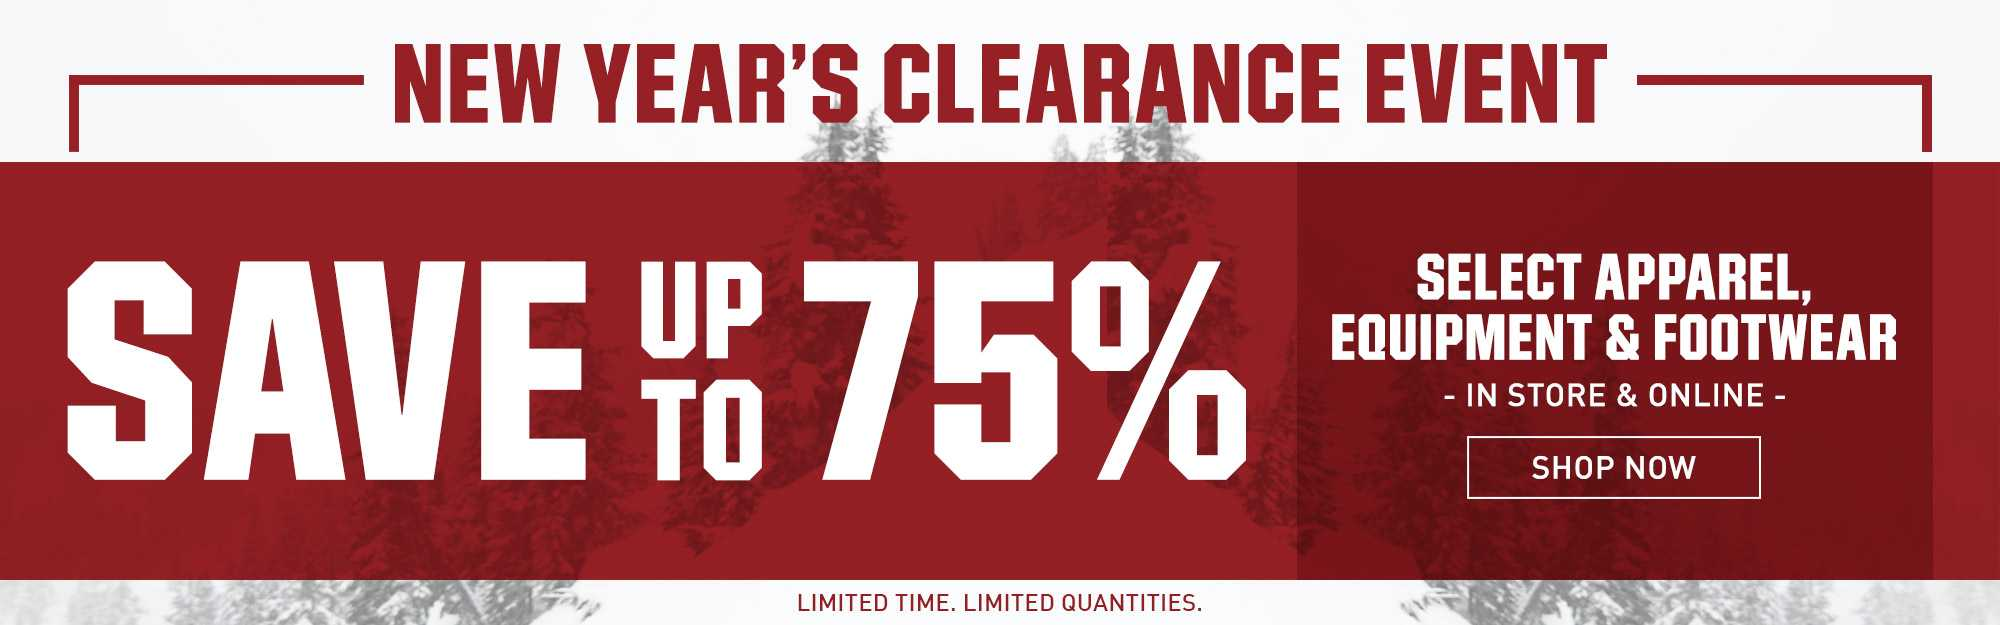 New Year's Clearance Event - Save Up to 75% - Select Apparel, Equipment & Footwear